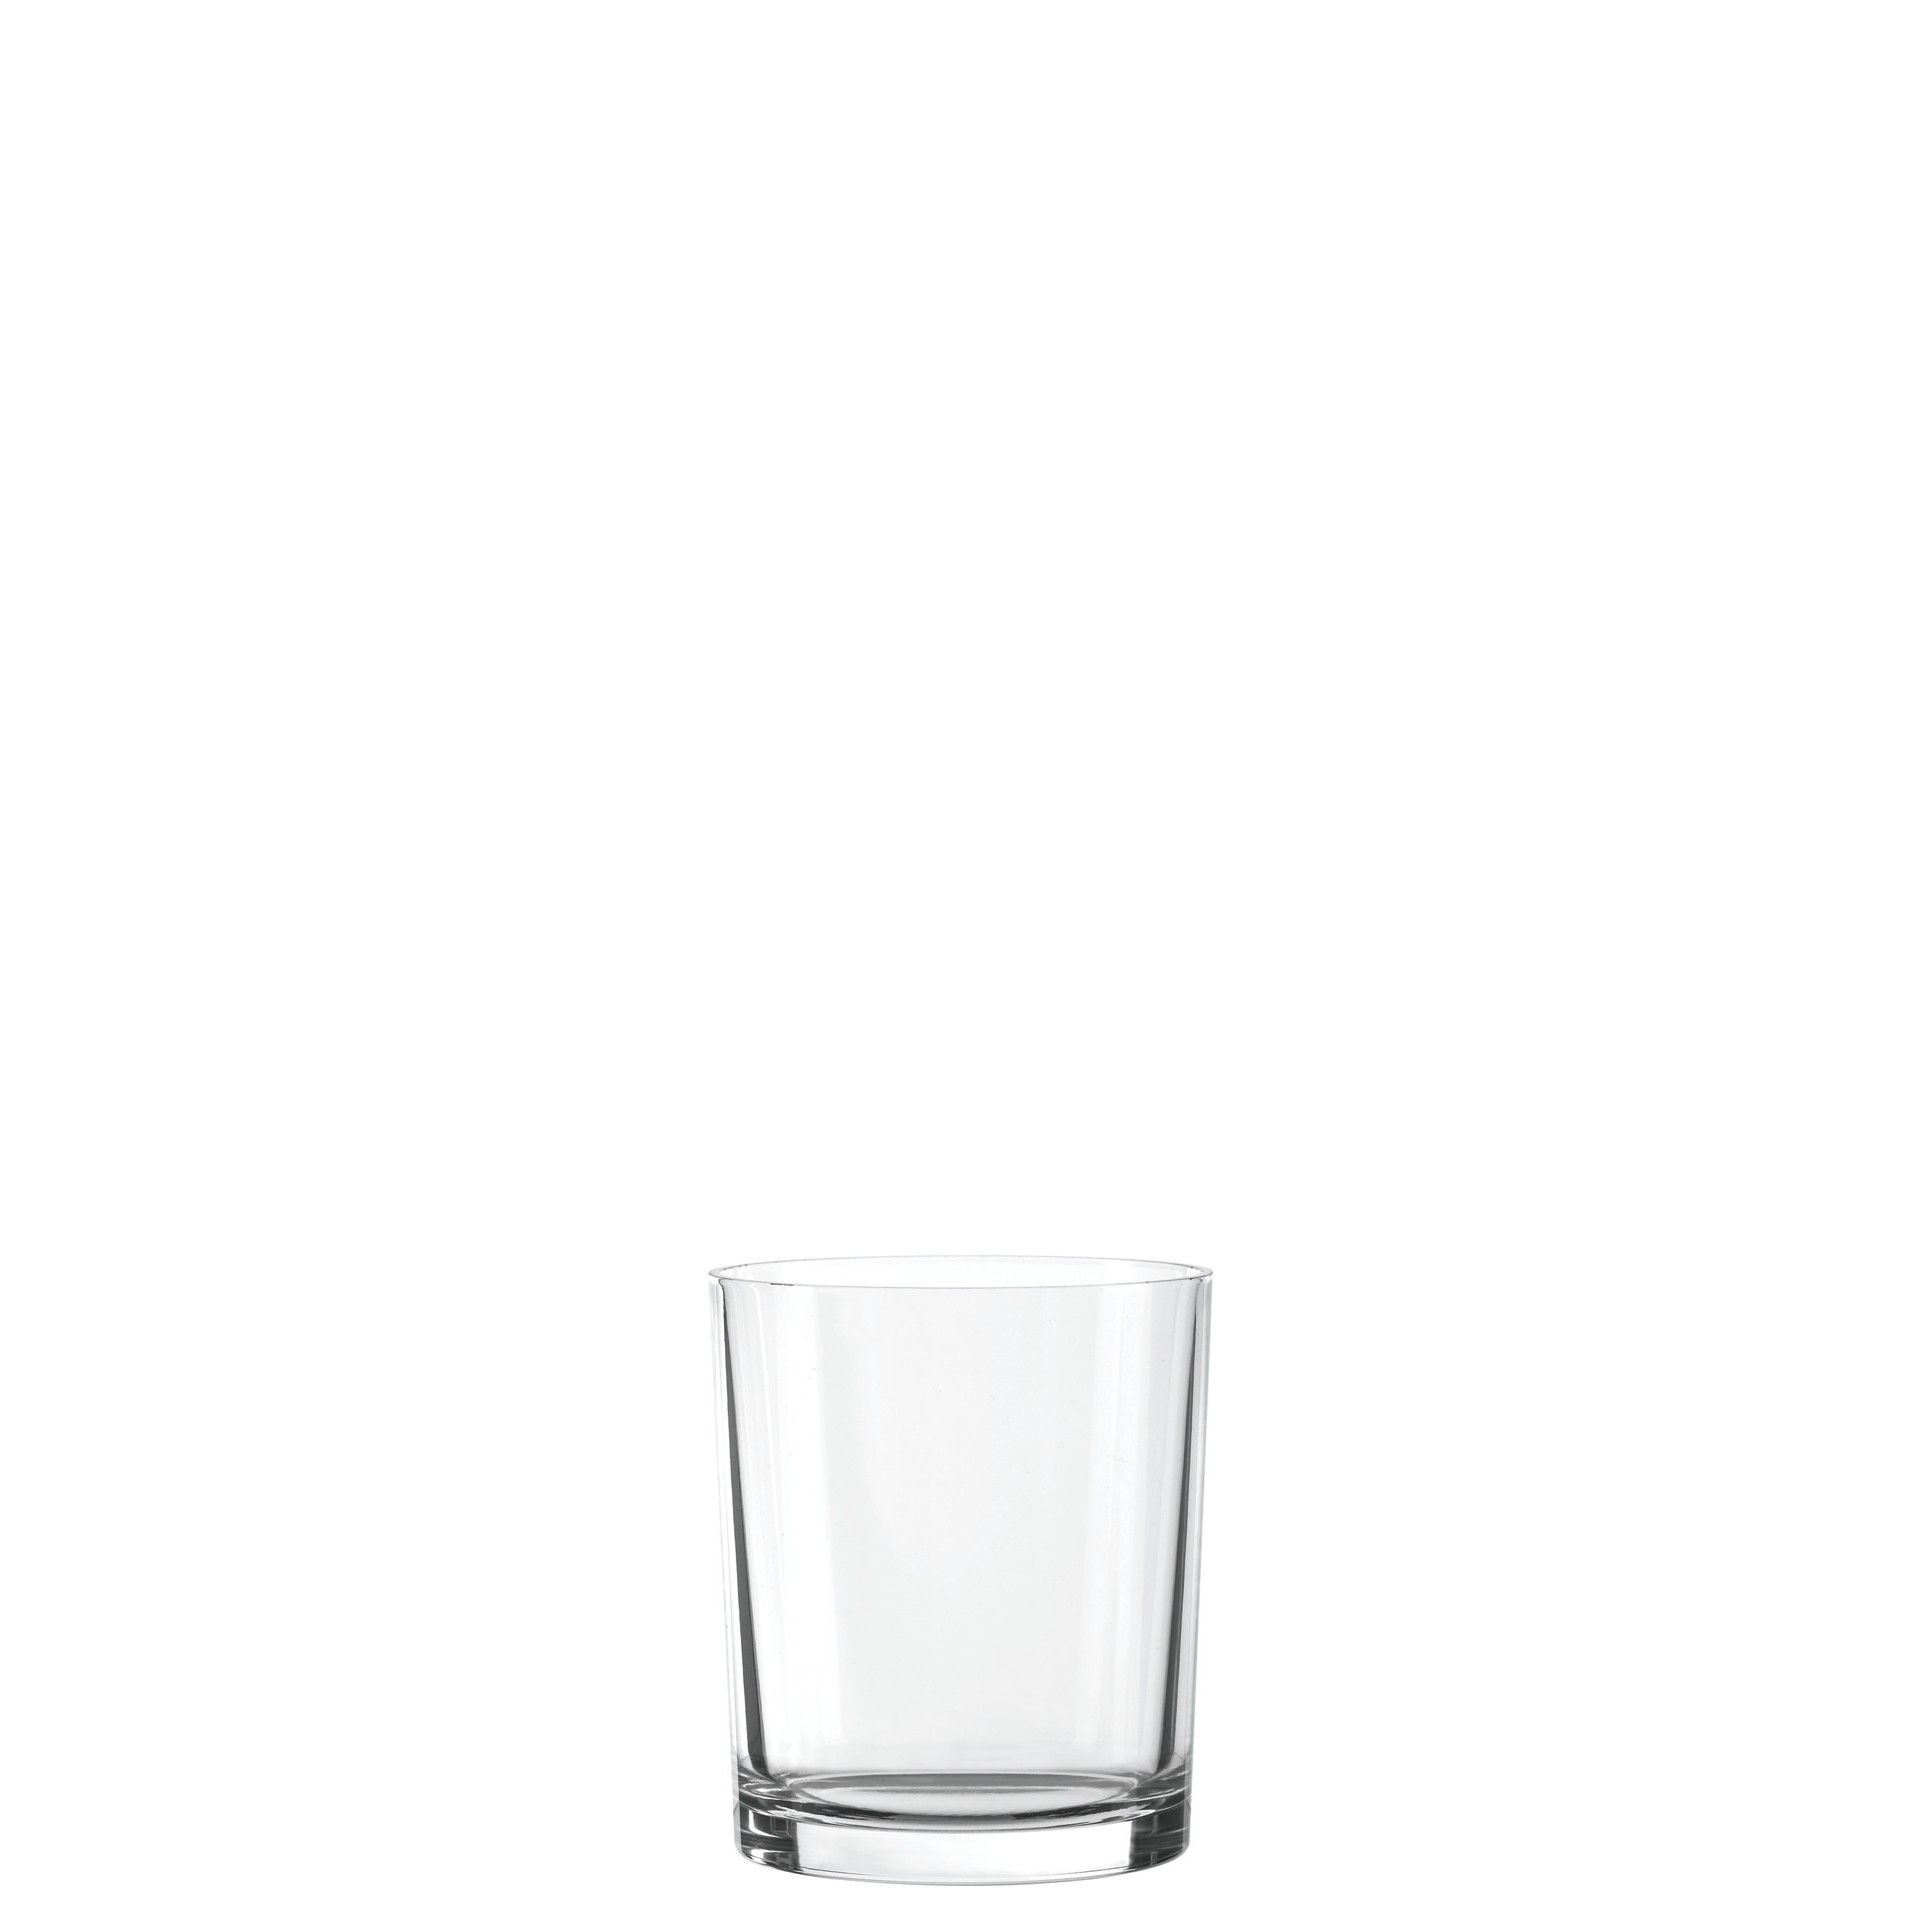 Club, Whiskyglas S.O.F. ø 78 mm / 0,29 l